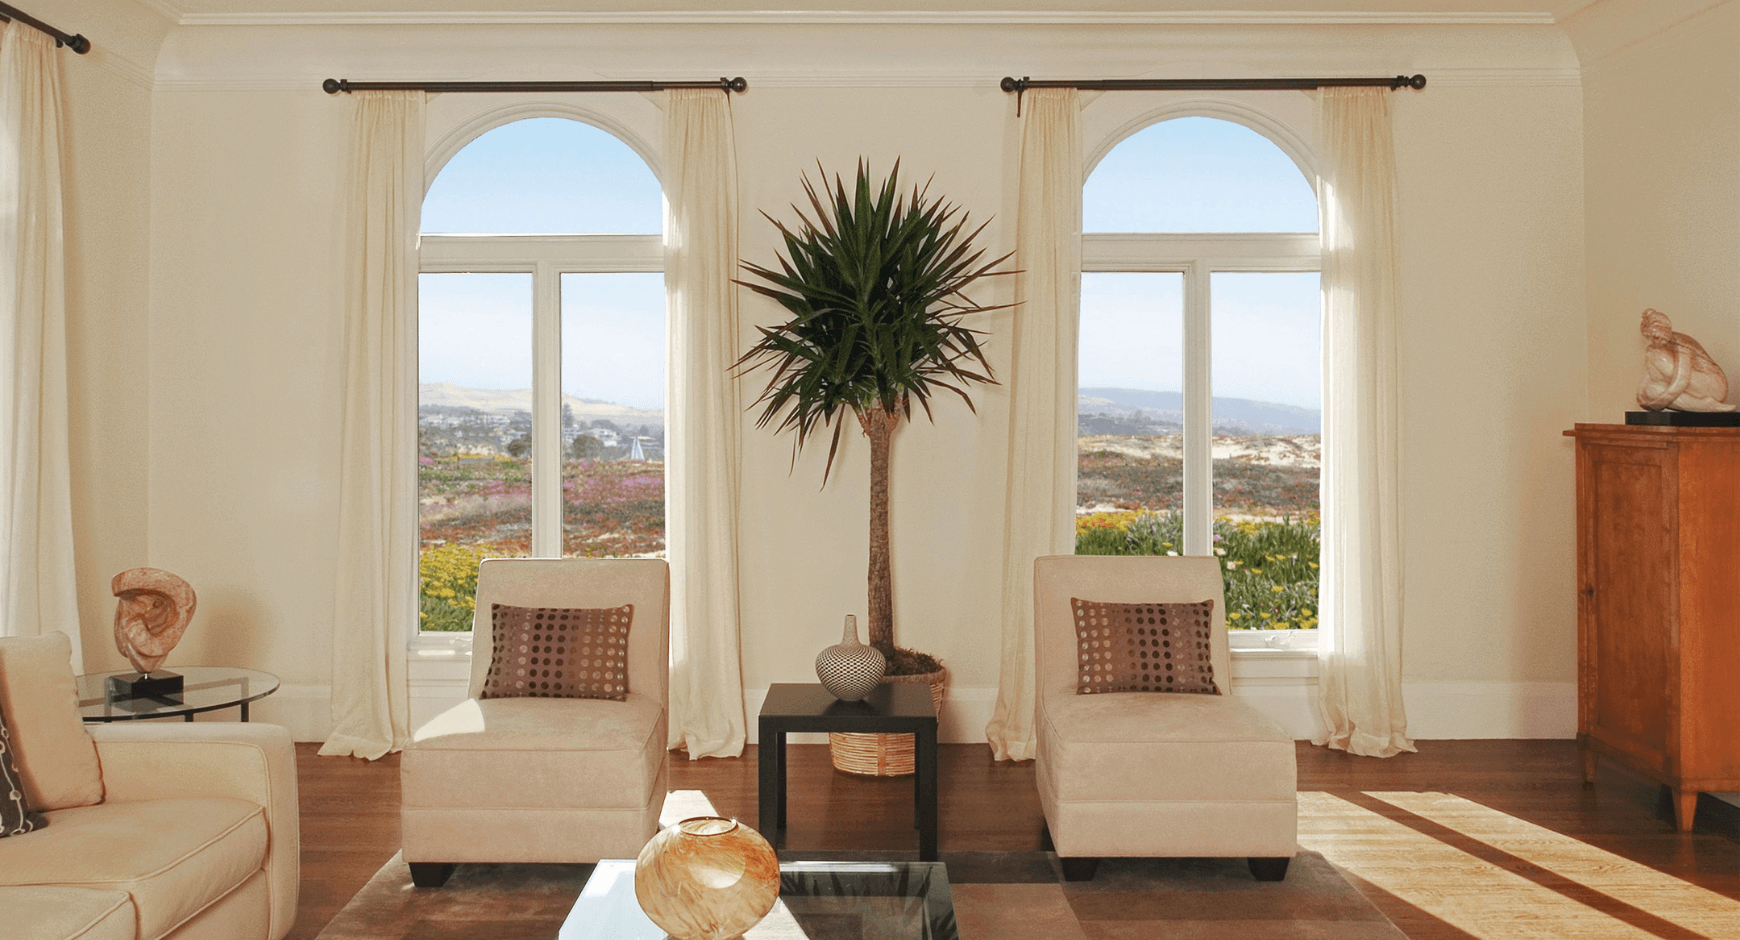 Image of a Mediterranean-style living room